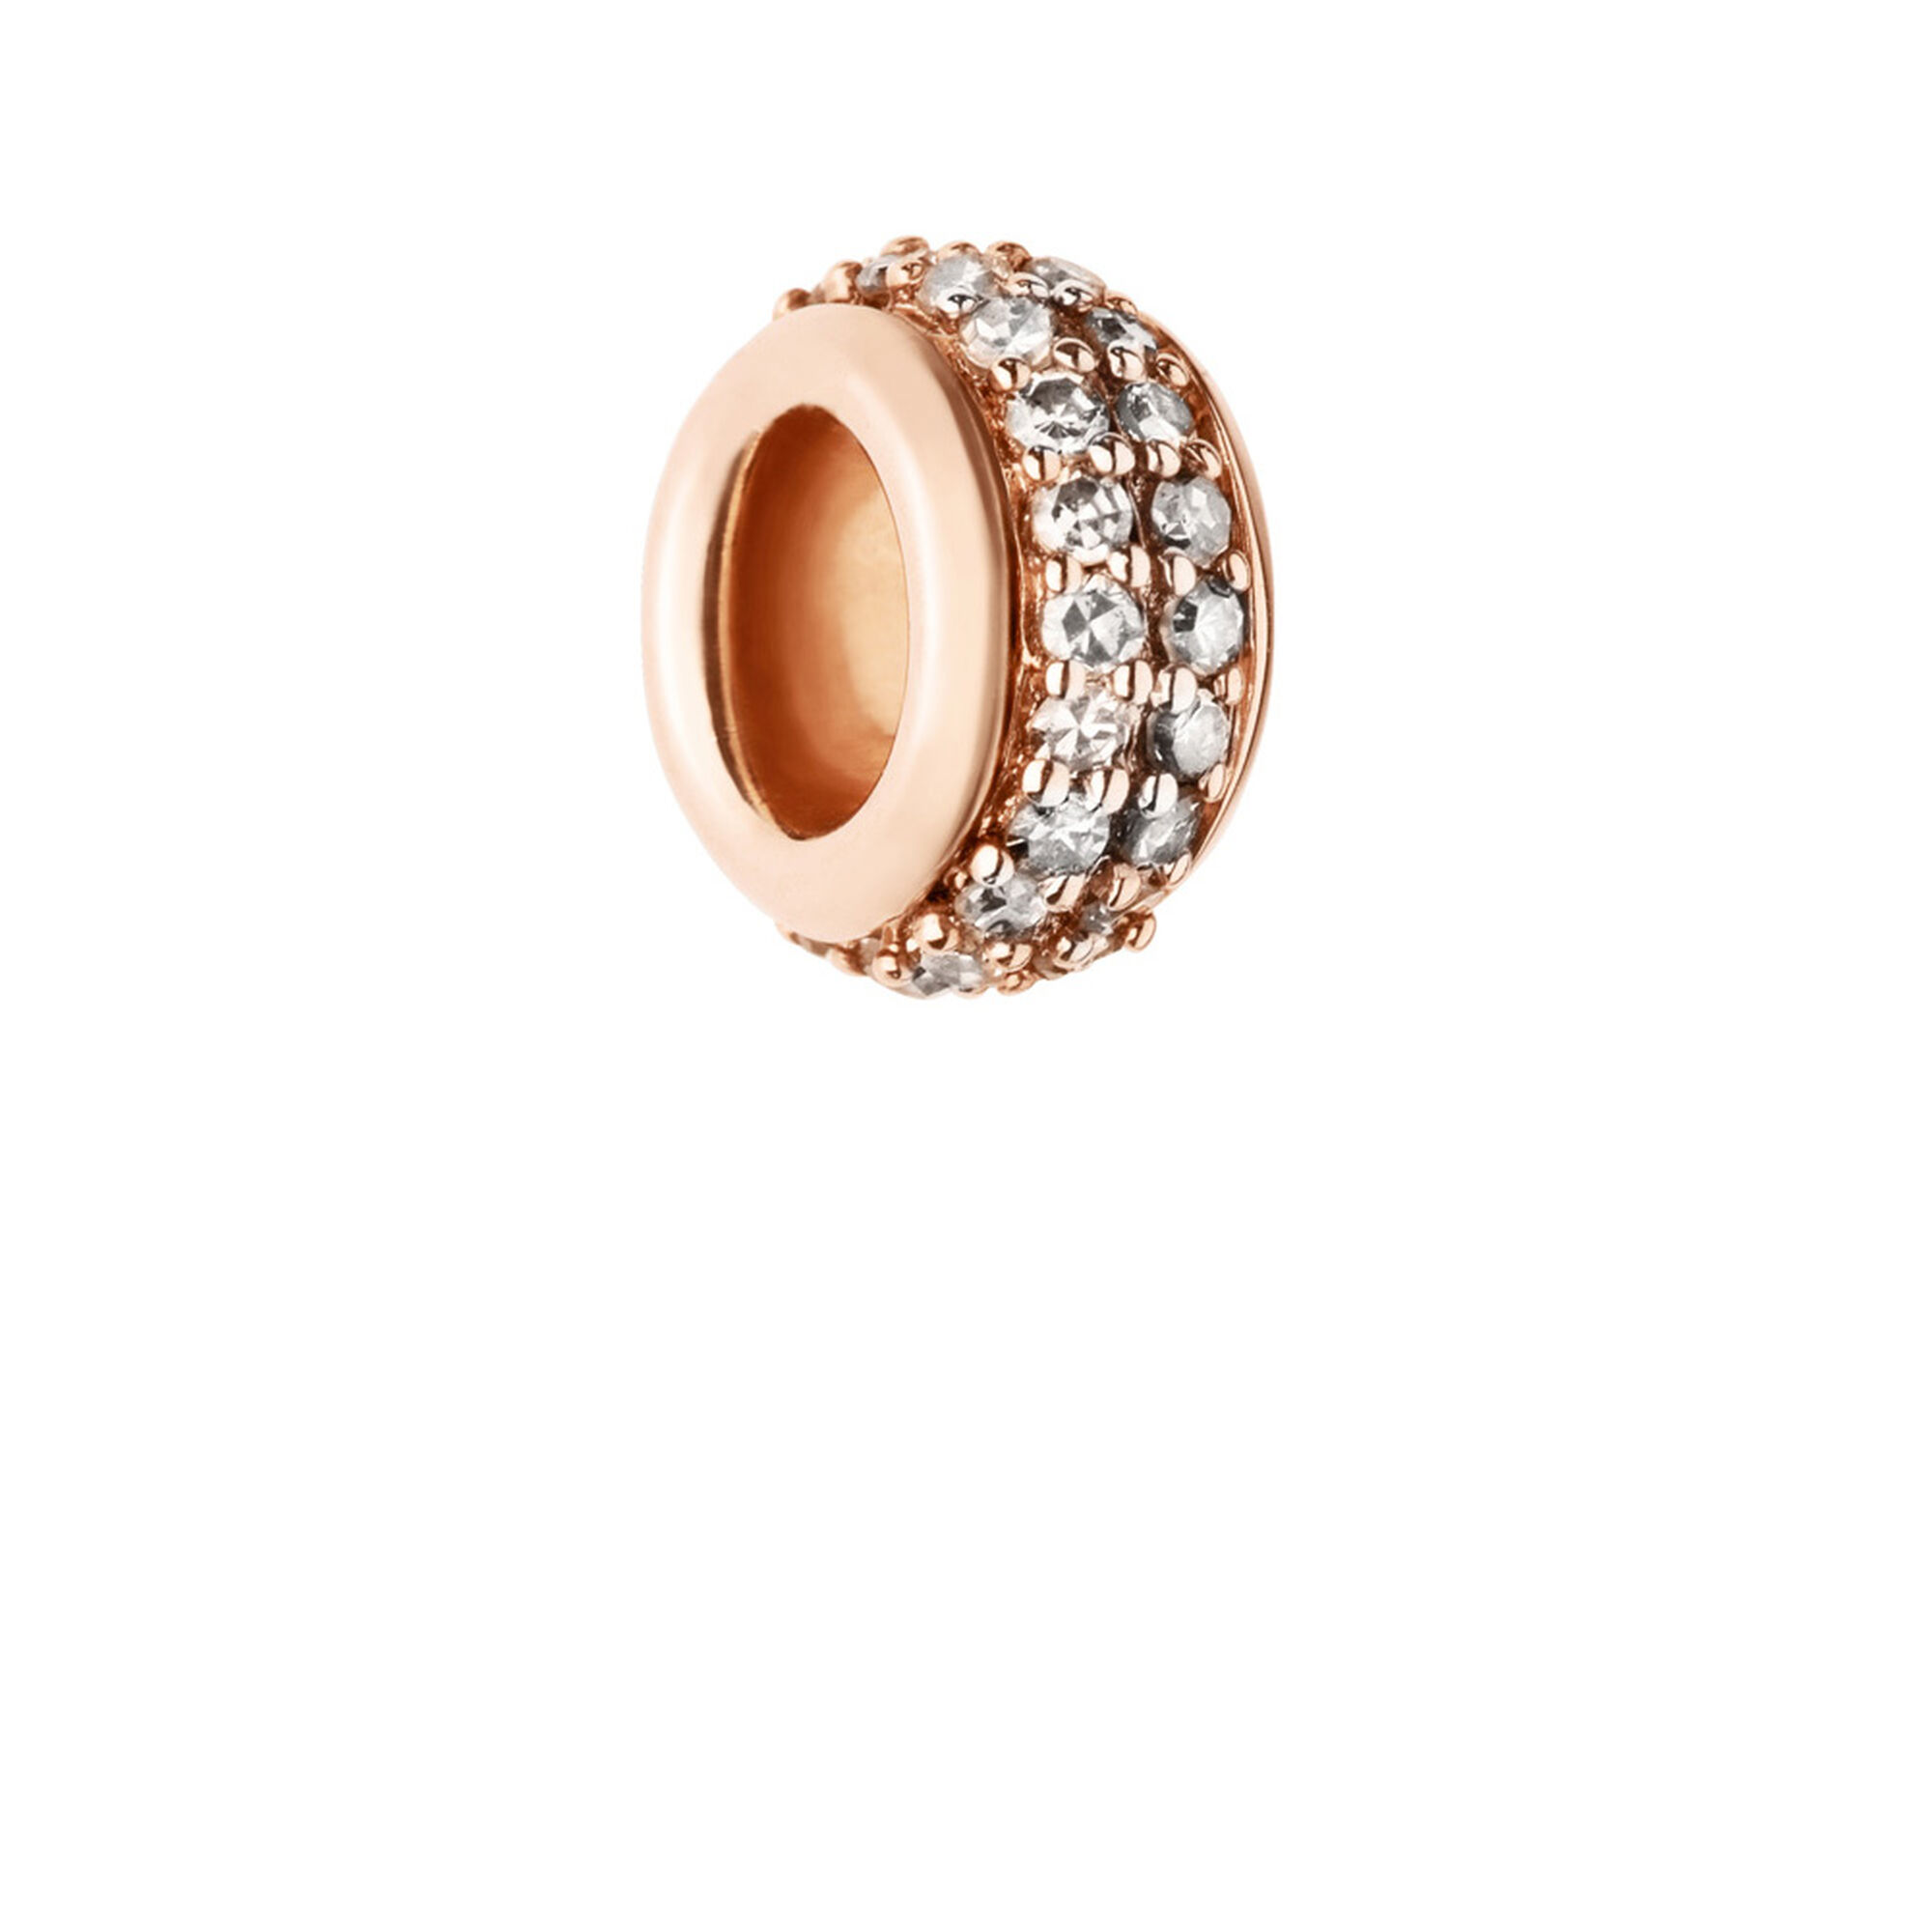 design champagne gold white anne ra rings and celebration vintage shop ring wedding diamond march smoked engagement